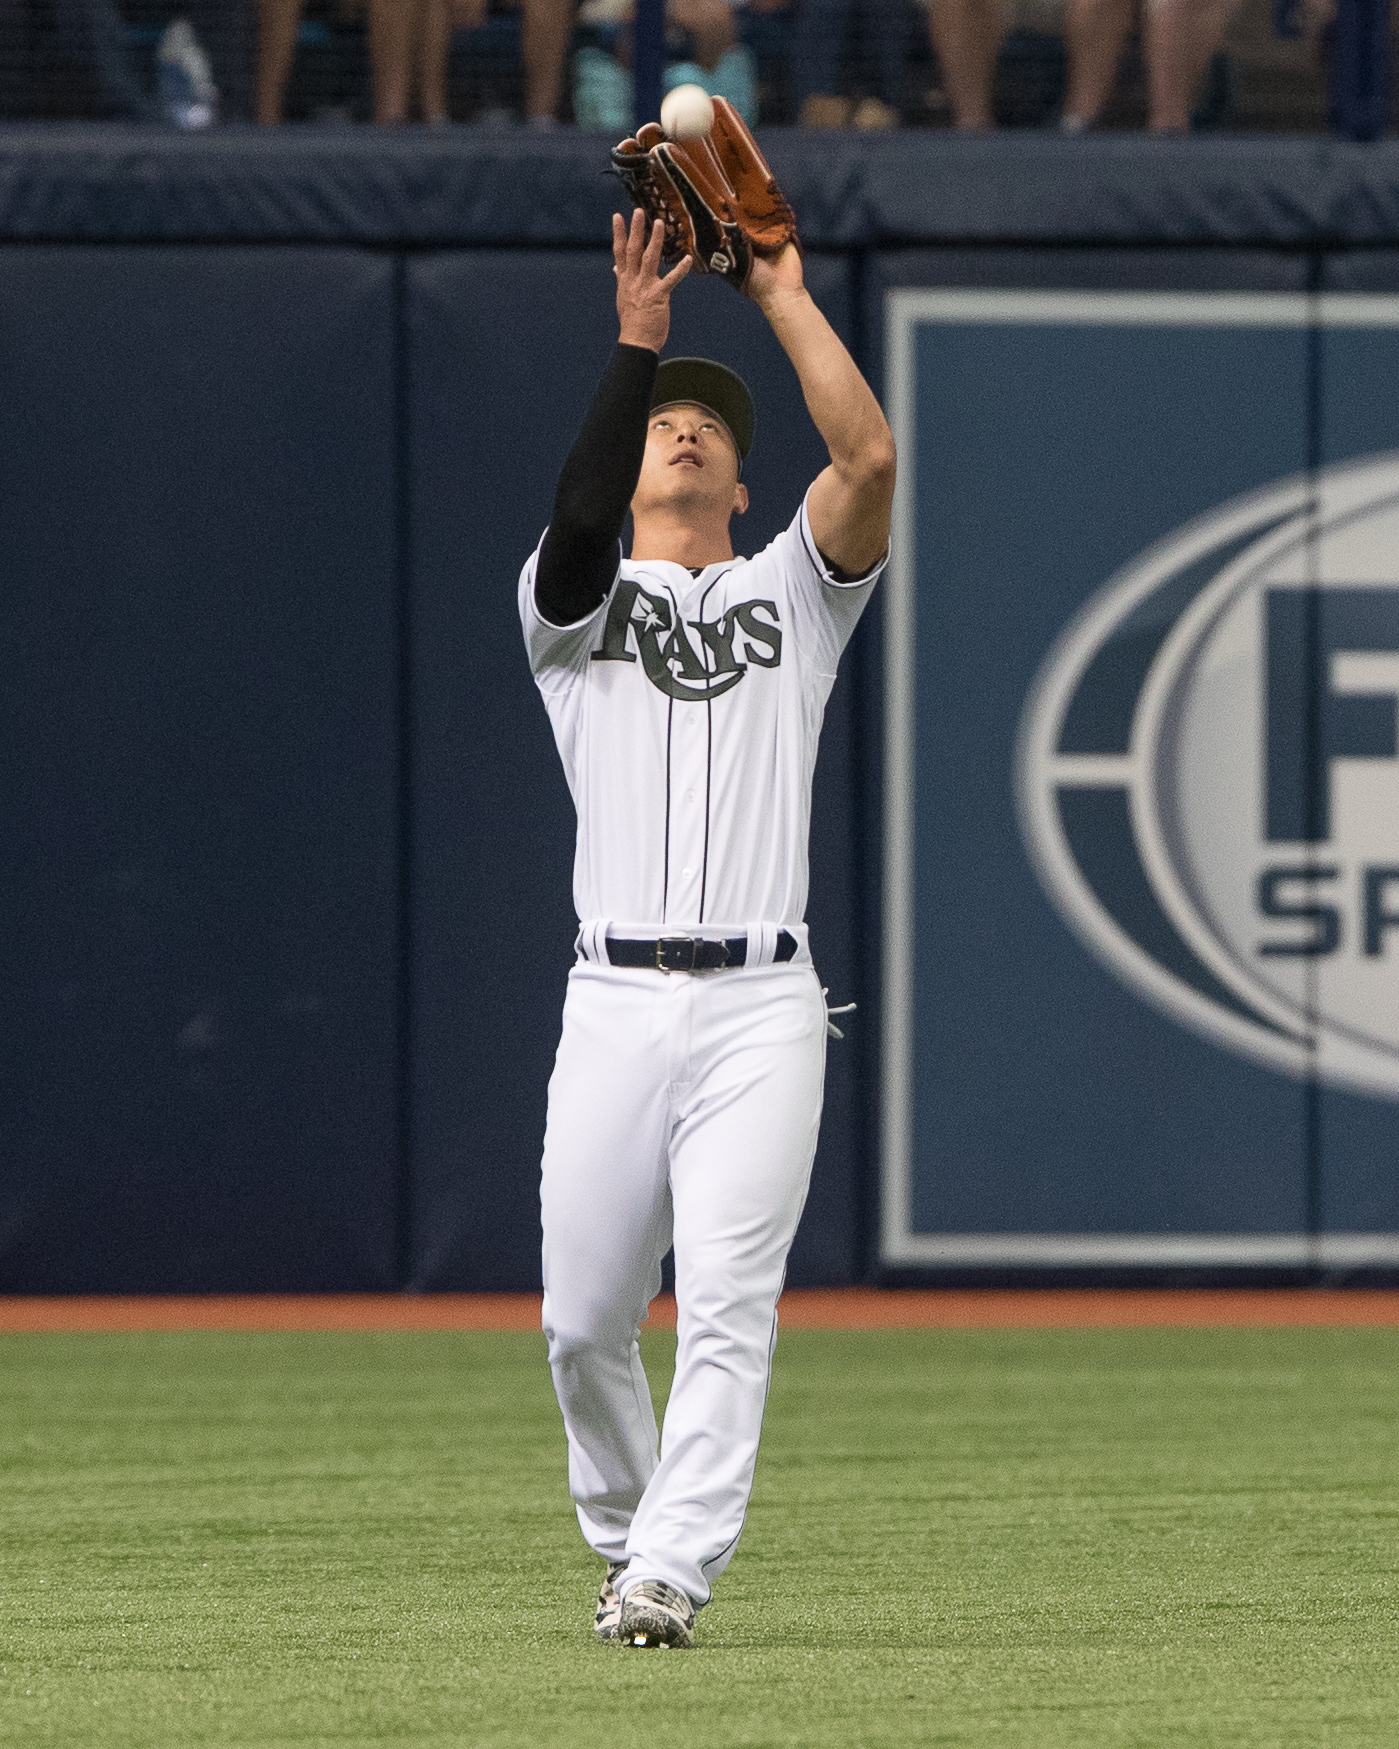 Rob Refsnyder makes the catch for Rays./STEVEN MUNCIE